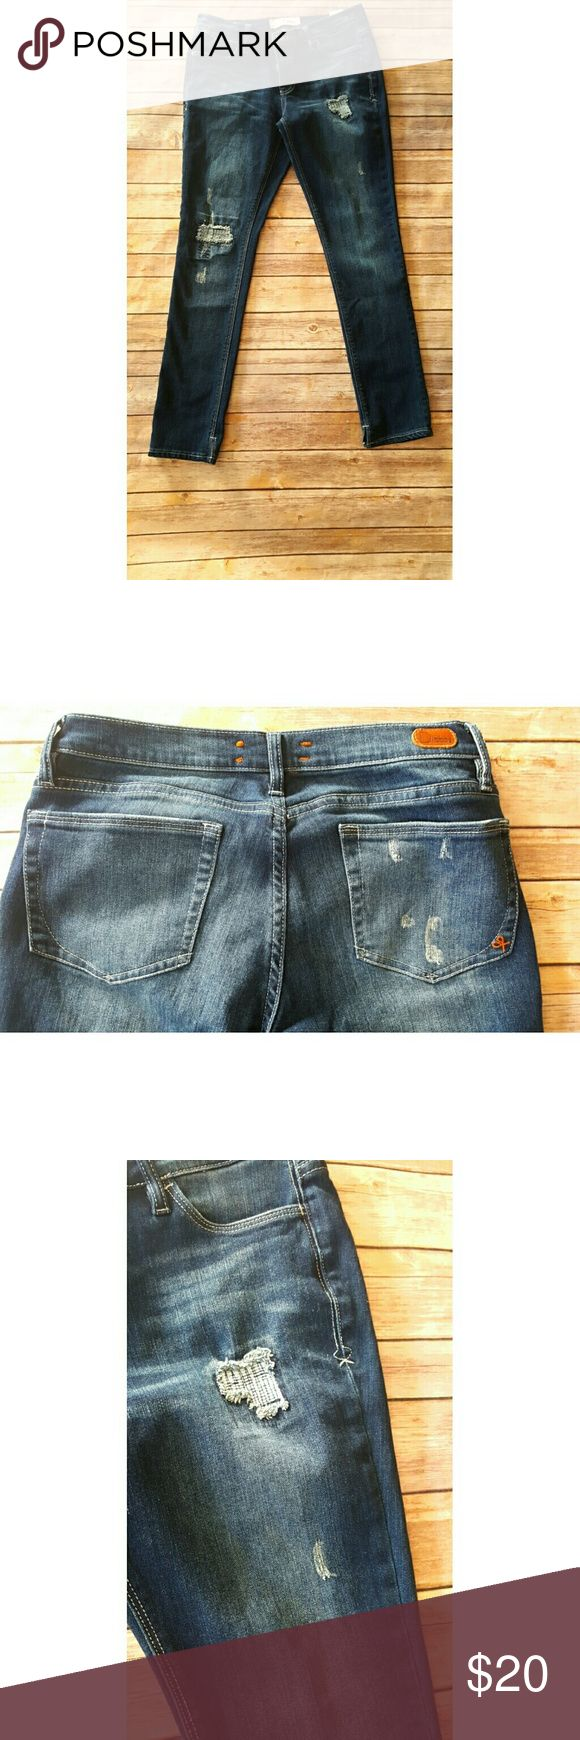 Dittos Distressed Jeans Sz 29 Waist measured flat approximately 15in Inseam Approximately 28in dittos  Jeans Ankle & Cropped